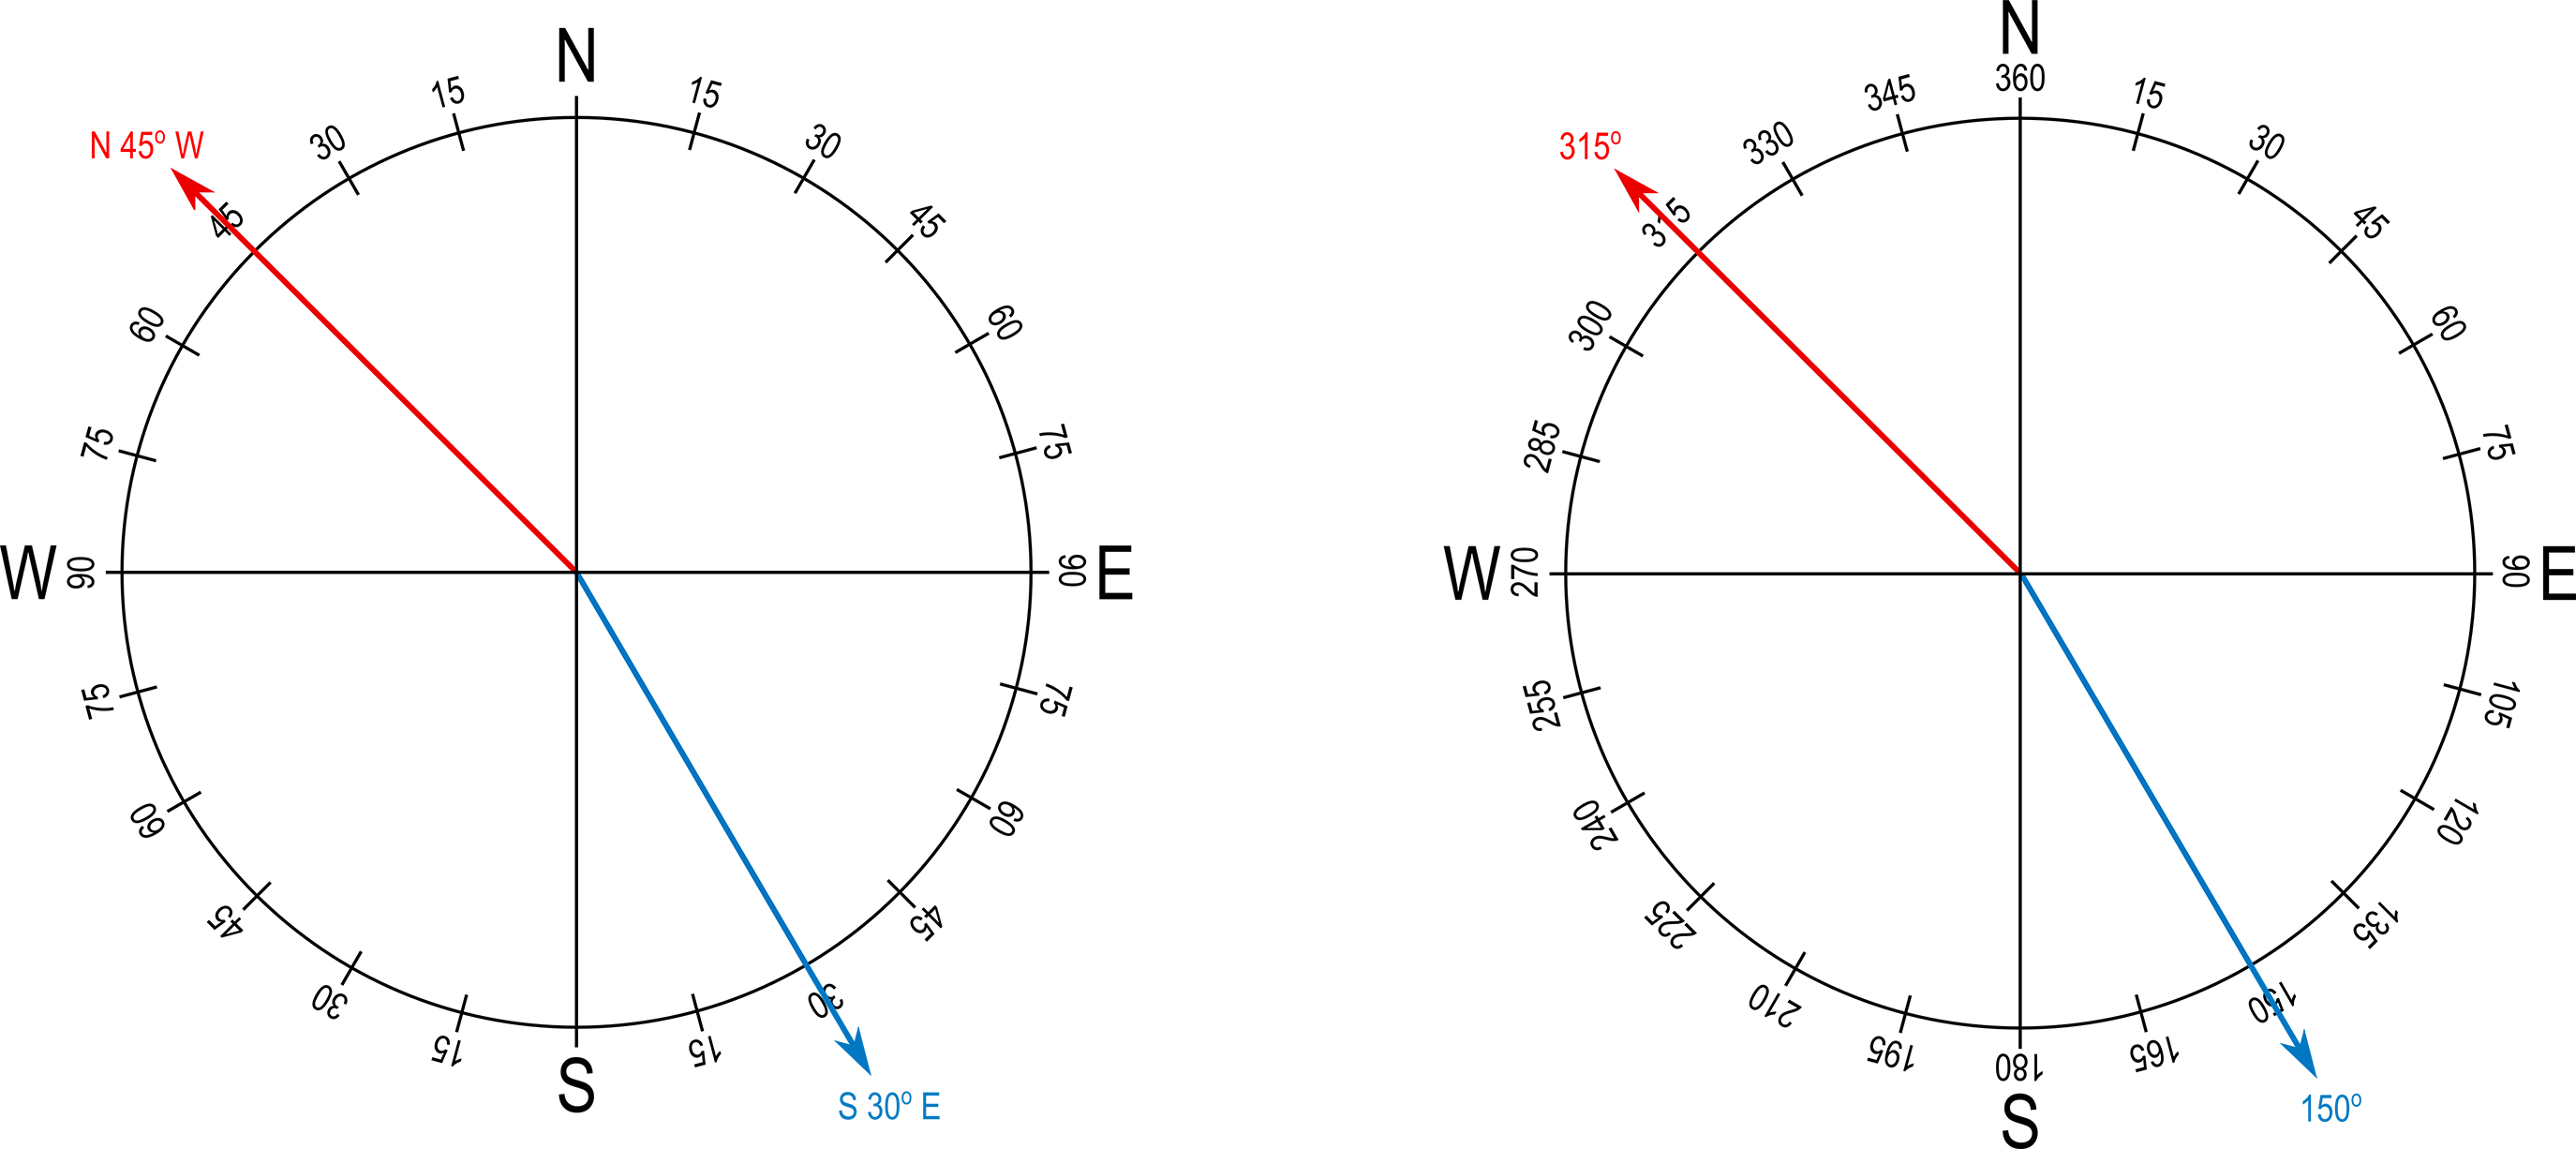 Figure 4. The bearing (left) and azimuth (right) systems of describing direction.